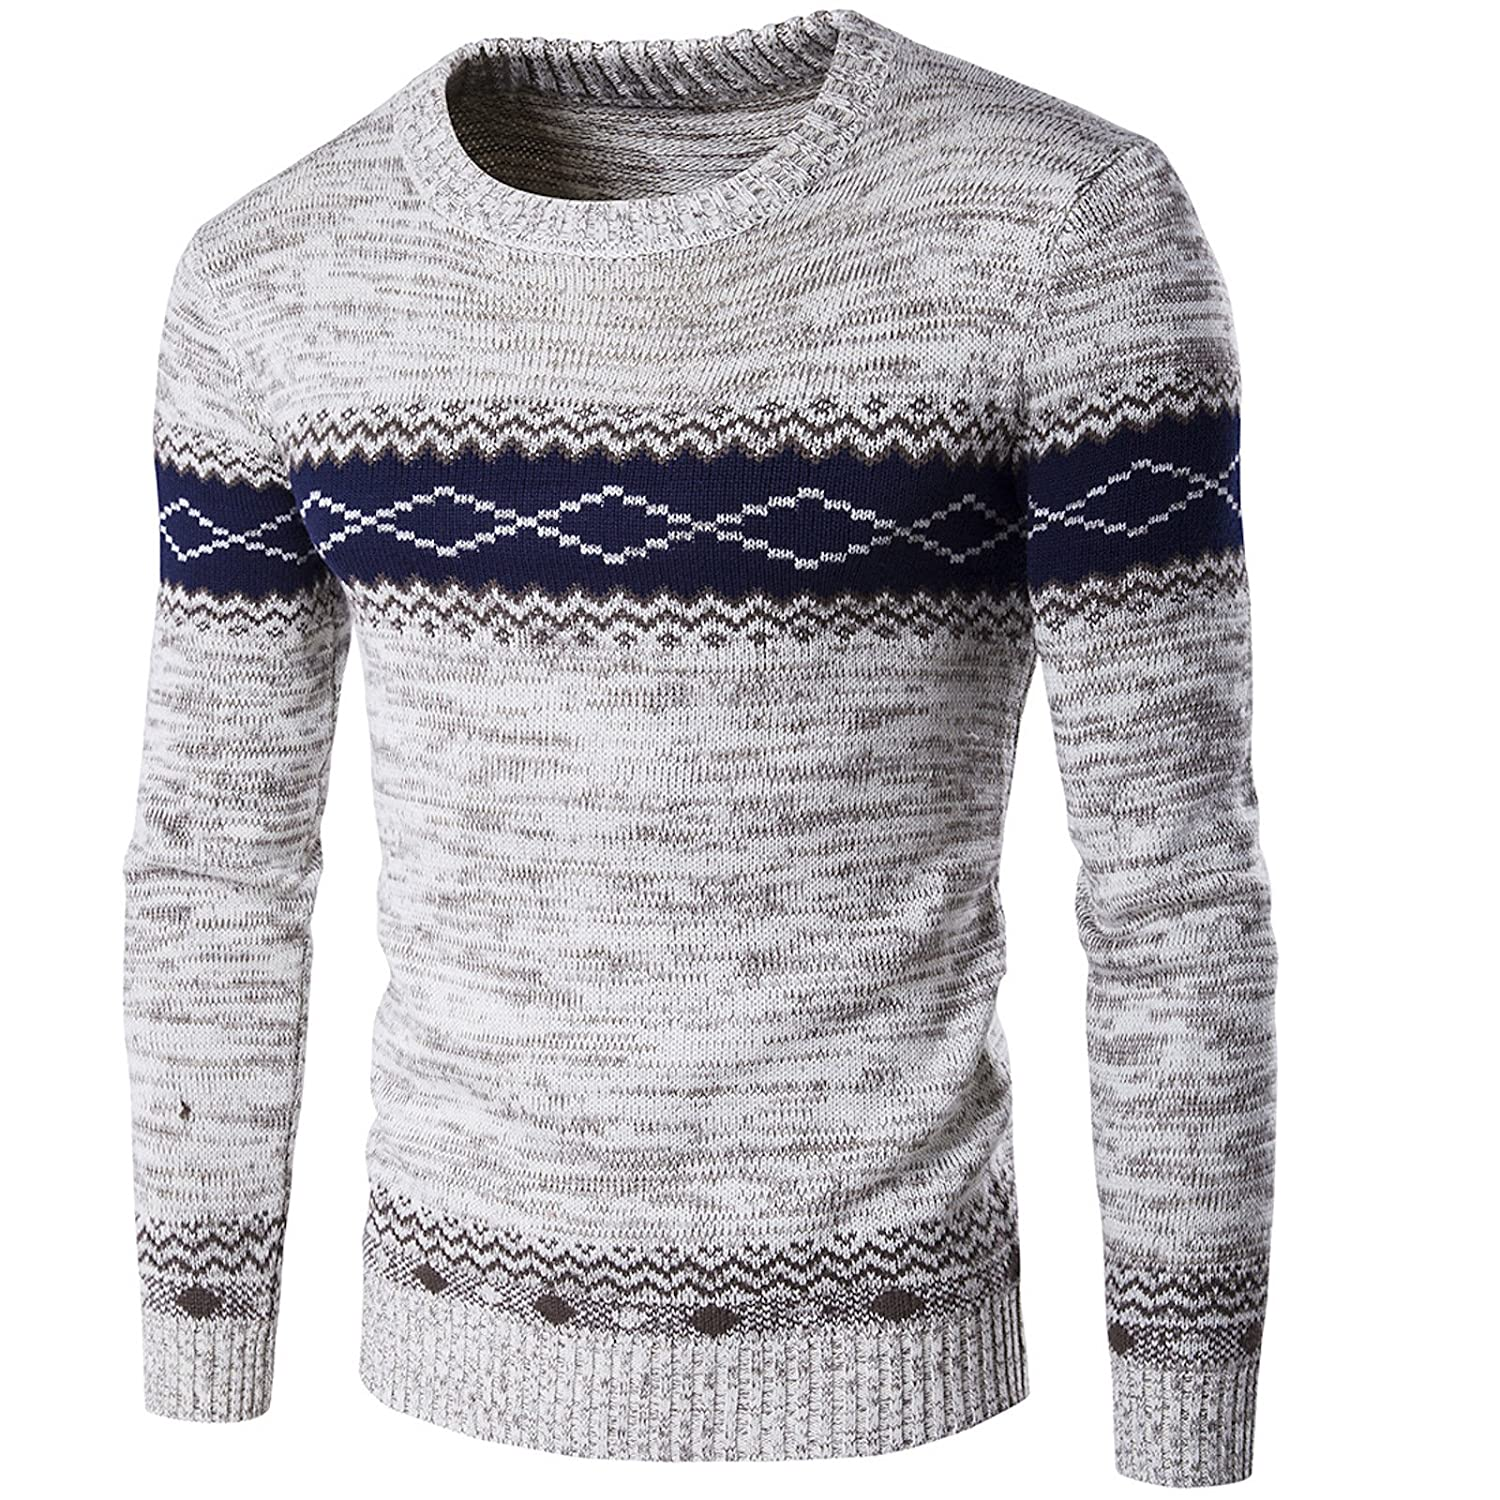 Elonglin Men's Sweater Knitted Pullover Aztec Pattern Long Sleeve Crewneck EL.AW-Y252